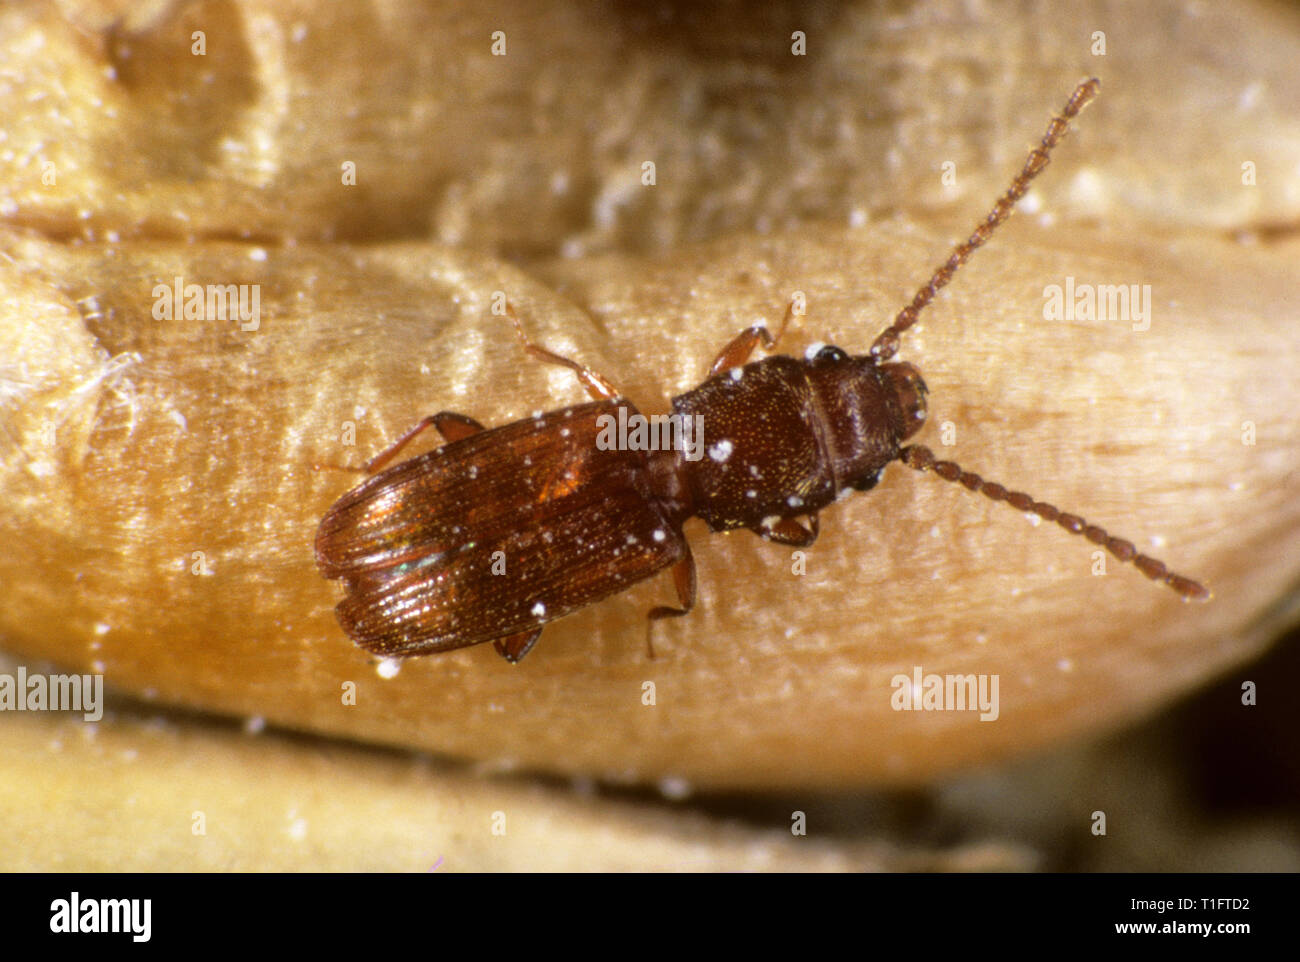 Rust red or flat grain beetle (Cryptolestes ferrugineus) a cereal storage pest insect on wheat grain - Stock Image